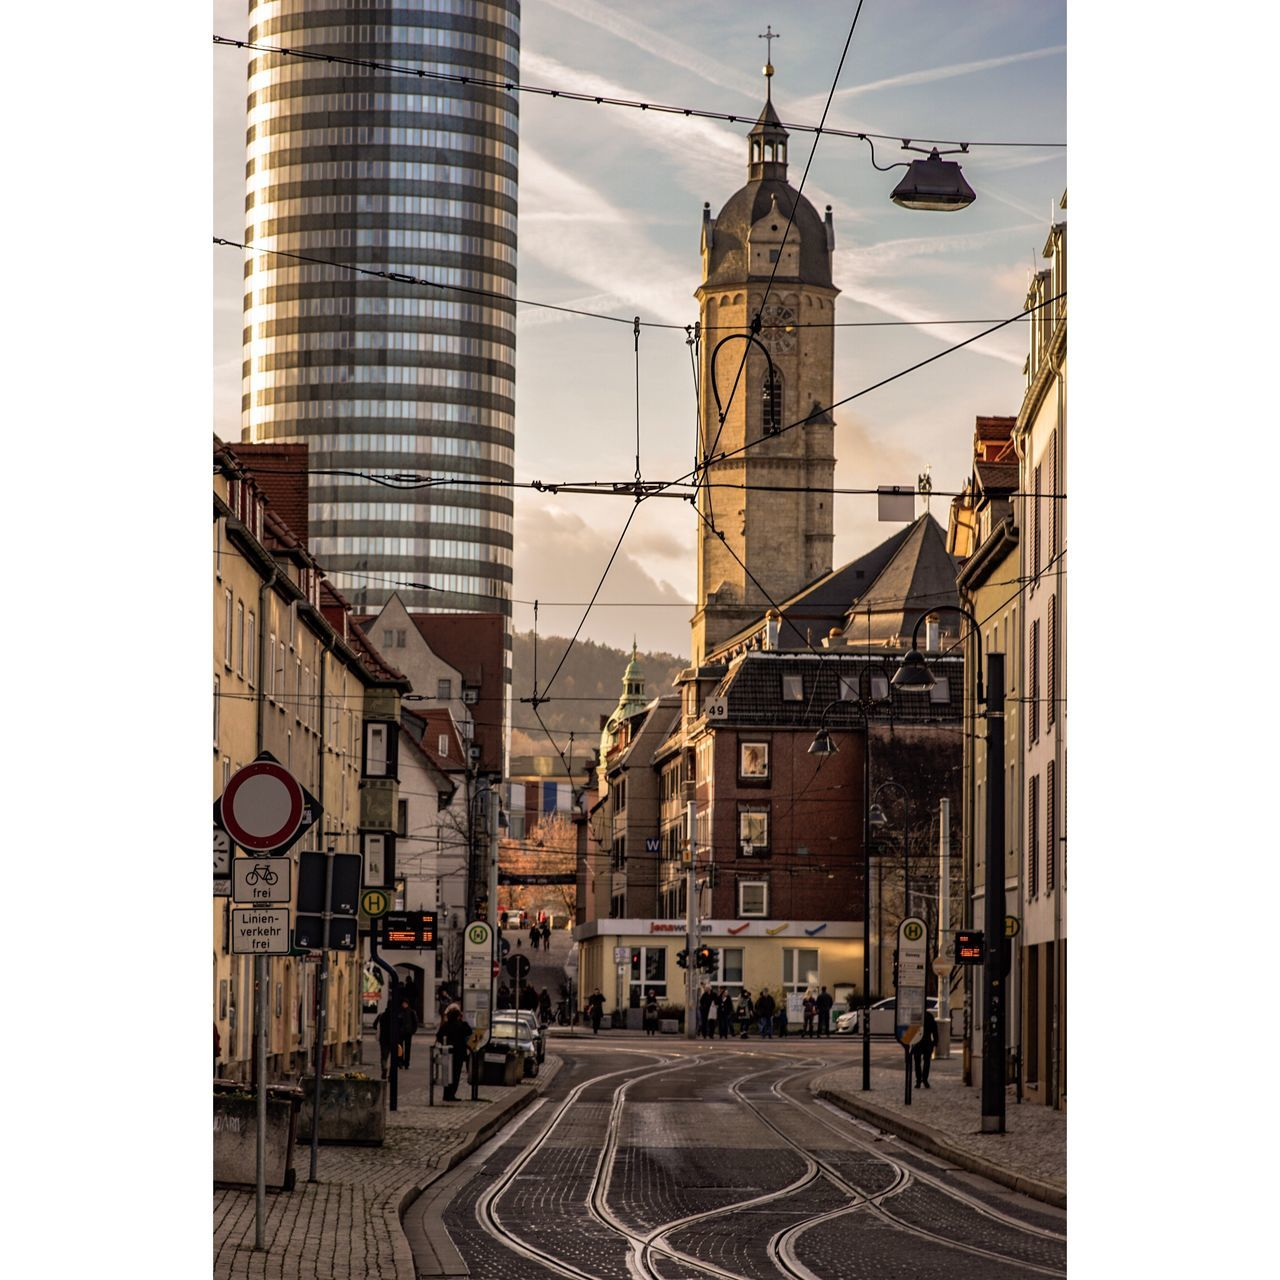 City Jena Built Structure Building Exterior Architecture Sky City Outdoors Travel Destinations Cloud - Sky Day Low Angle View No People Clock City Gate